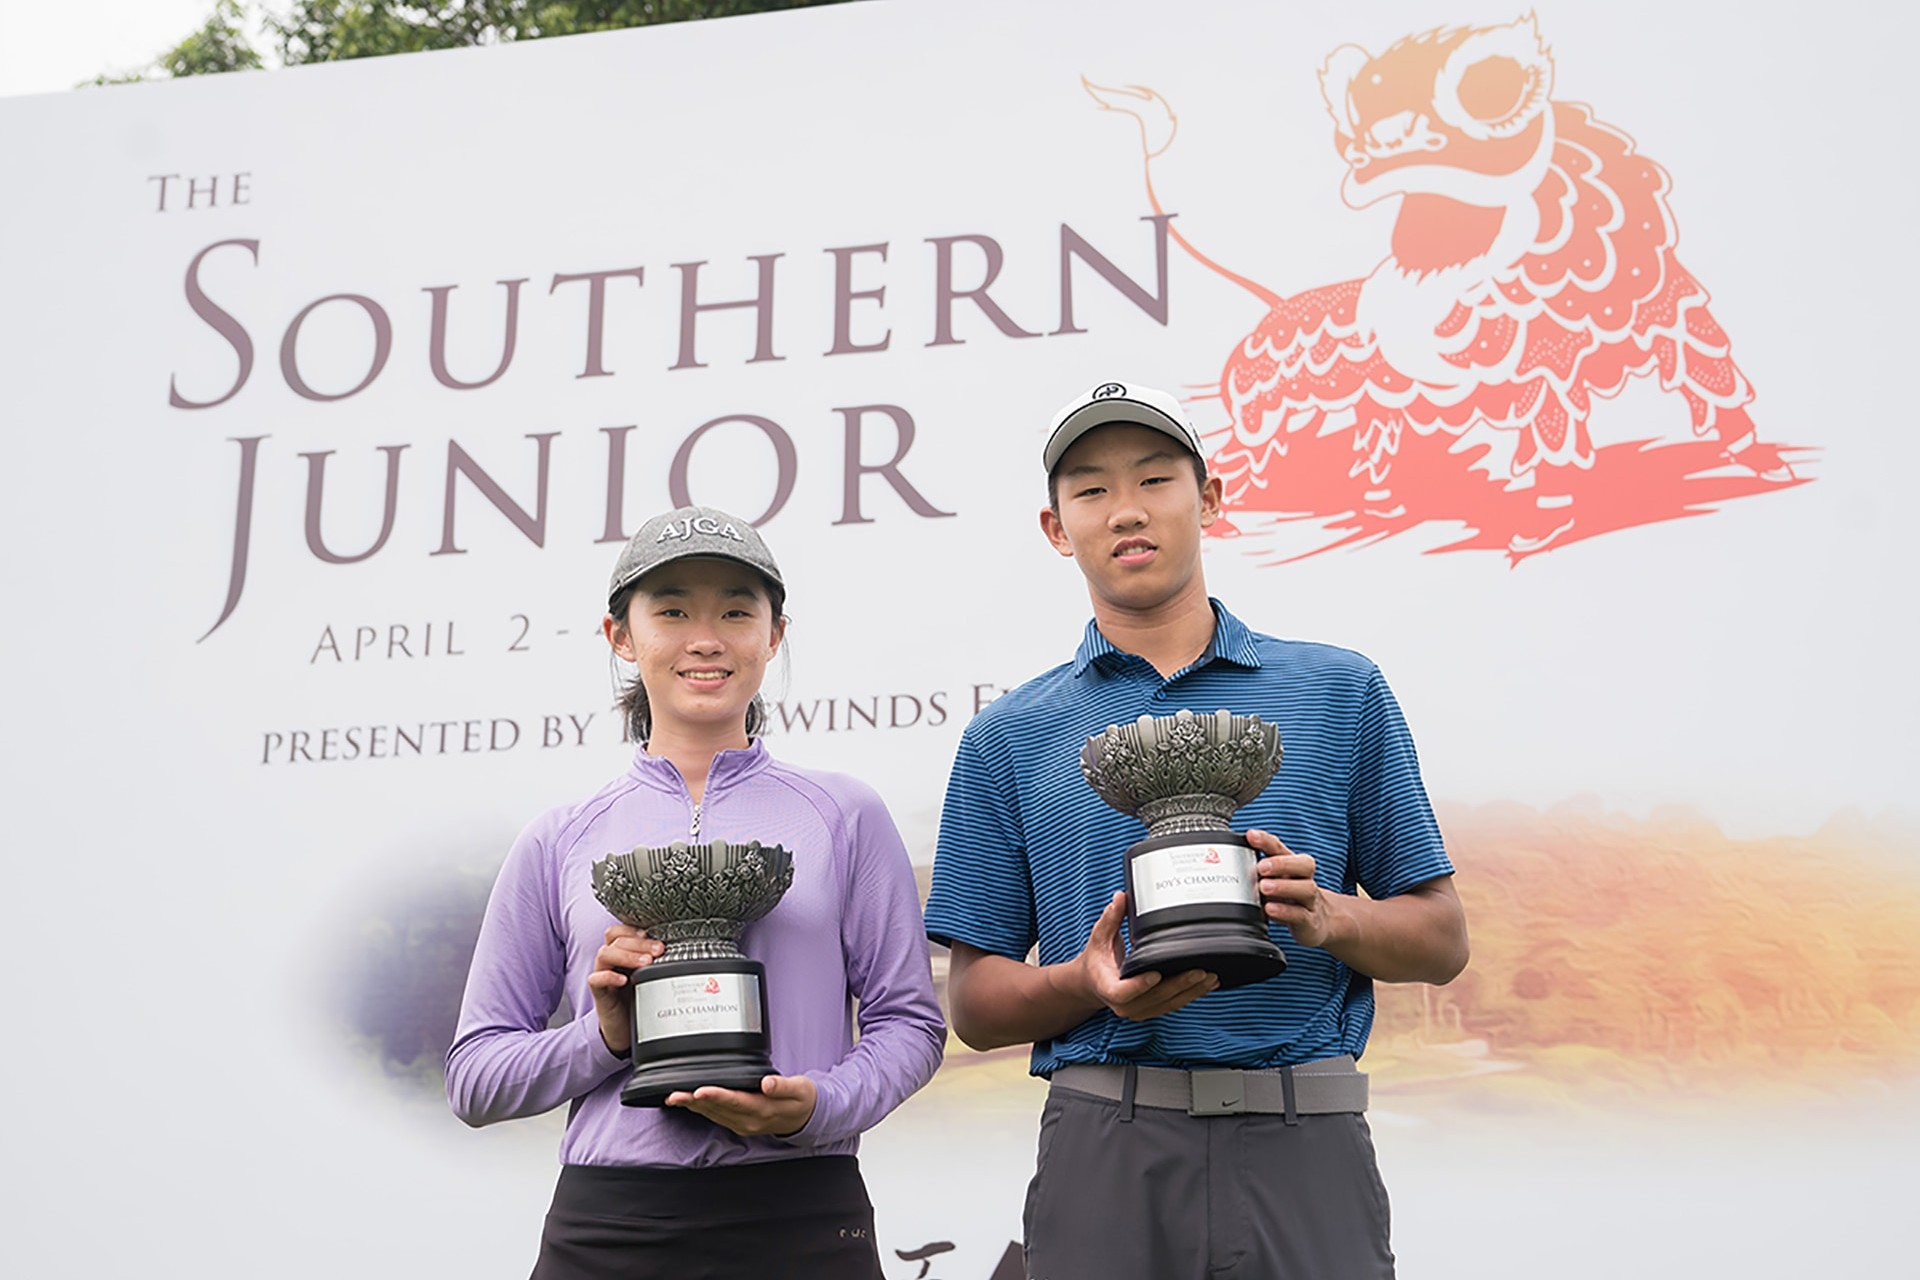 The Southern Junior - Kuan and Jiang